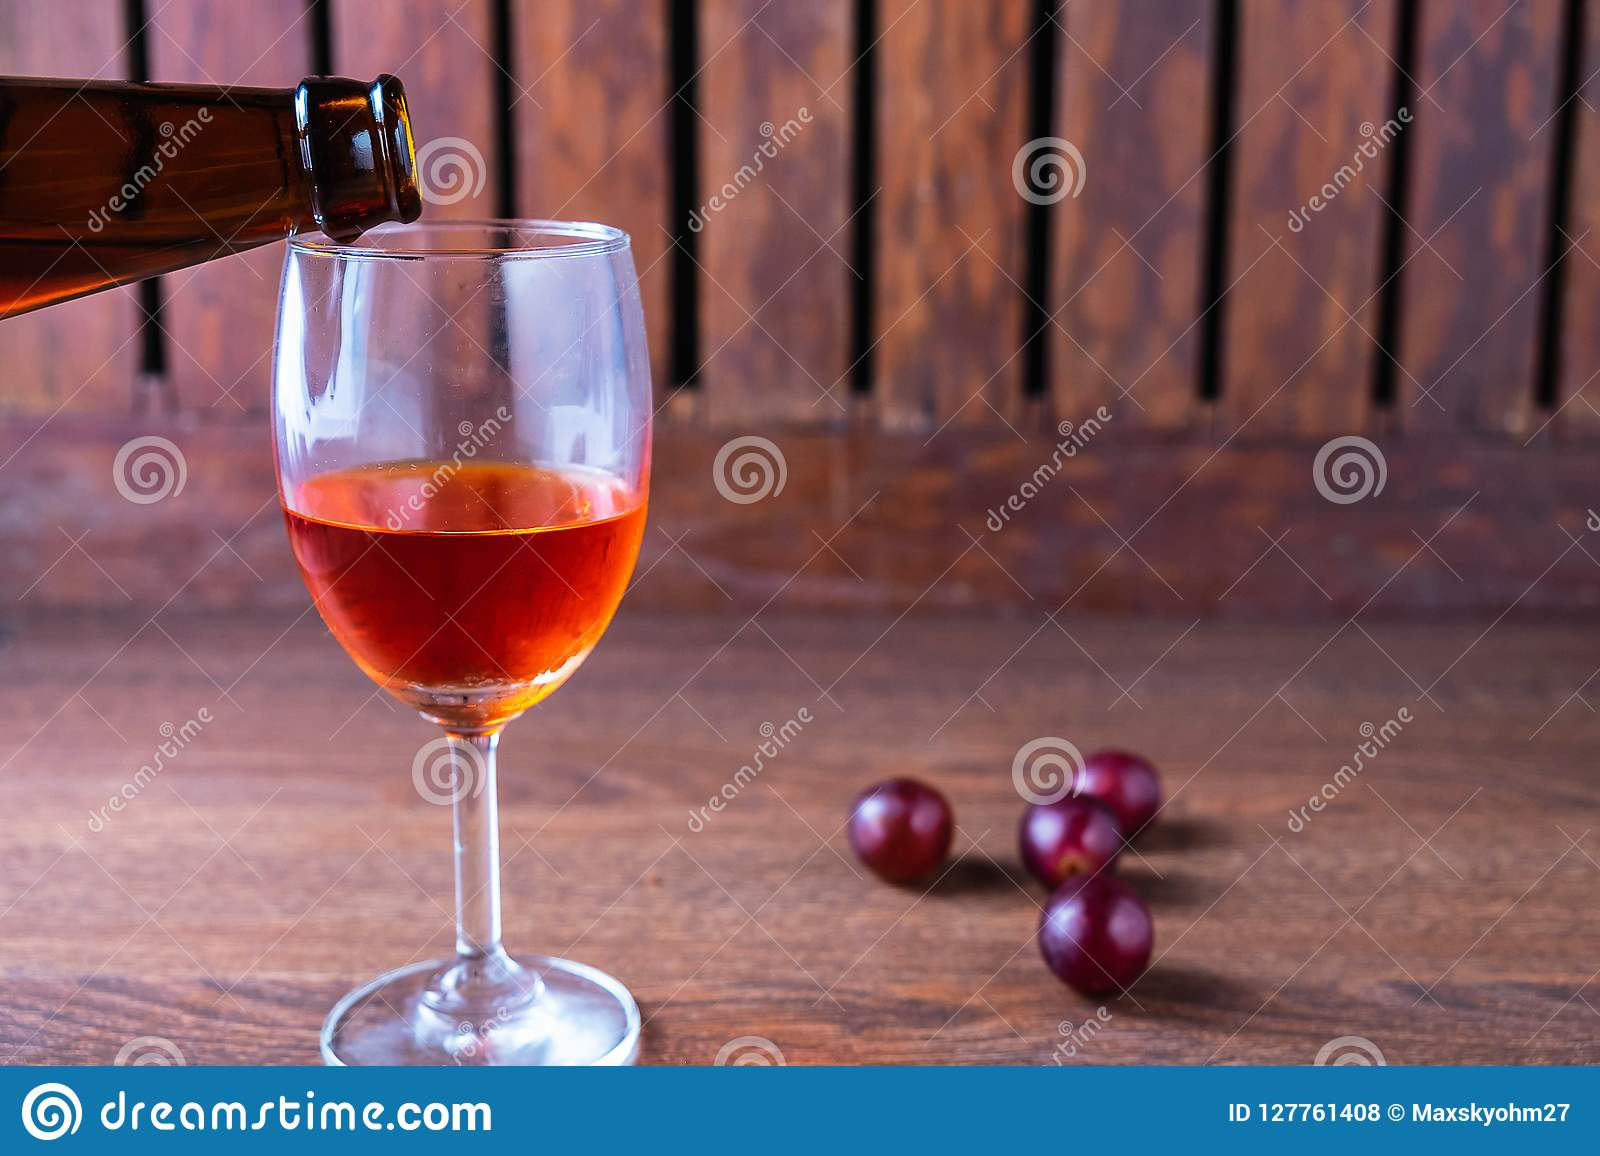 Pour red wine into a glass of wine on a wooden background.